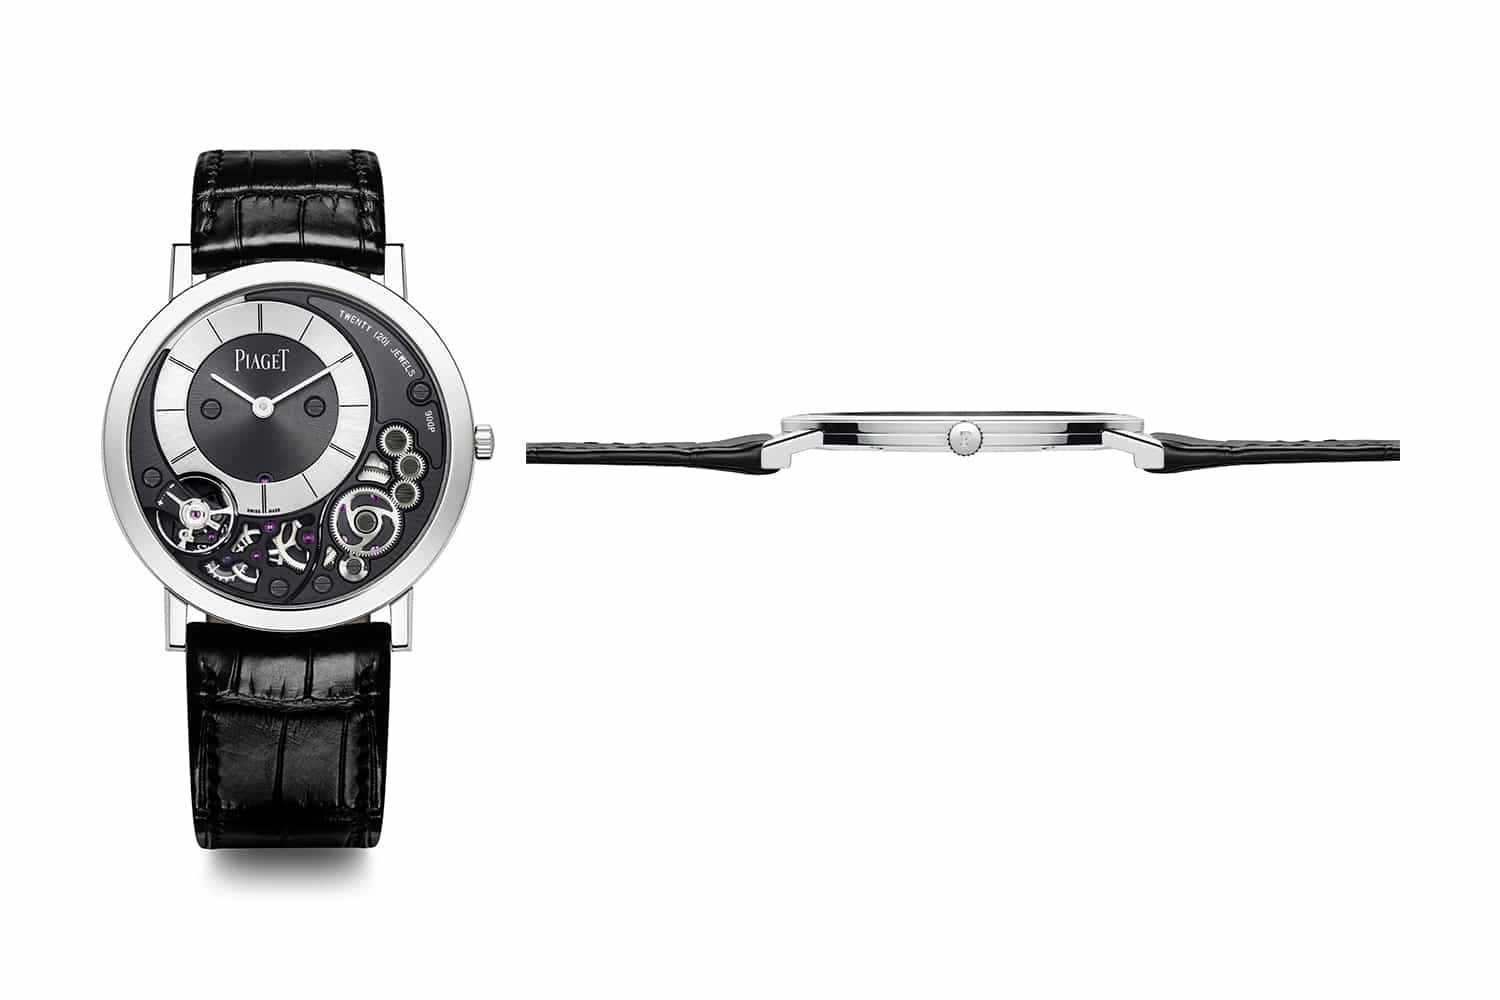 piaget altiplano 900p 38mm watch